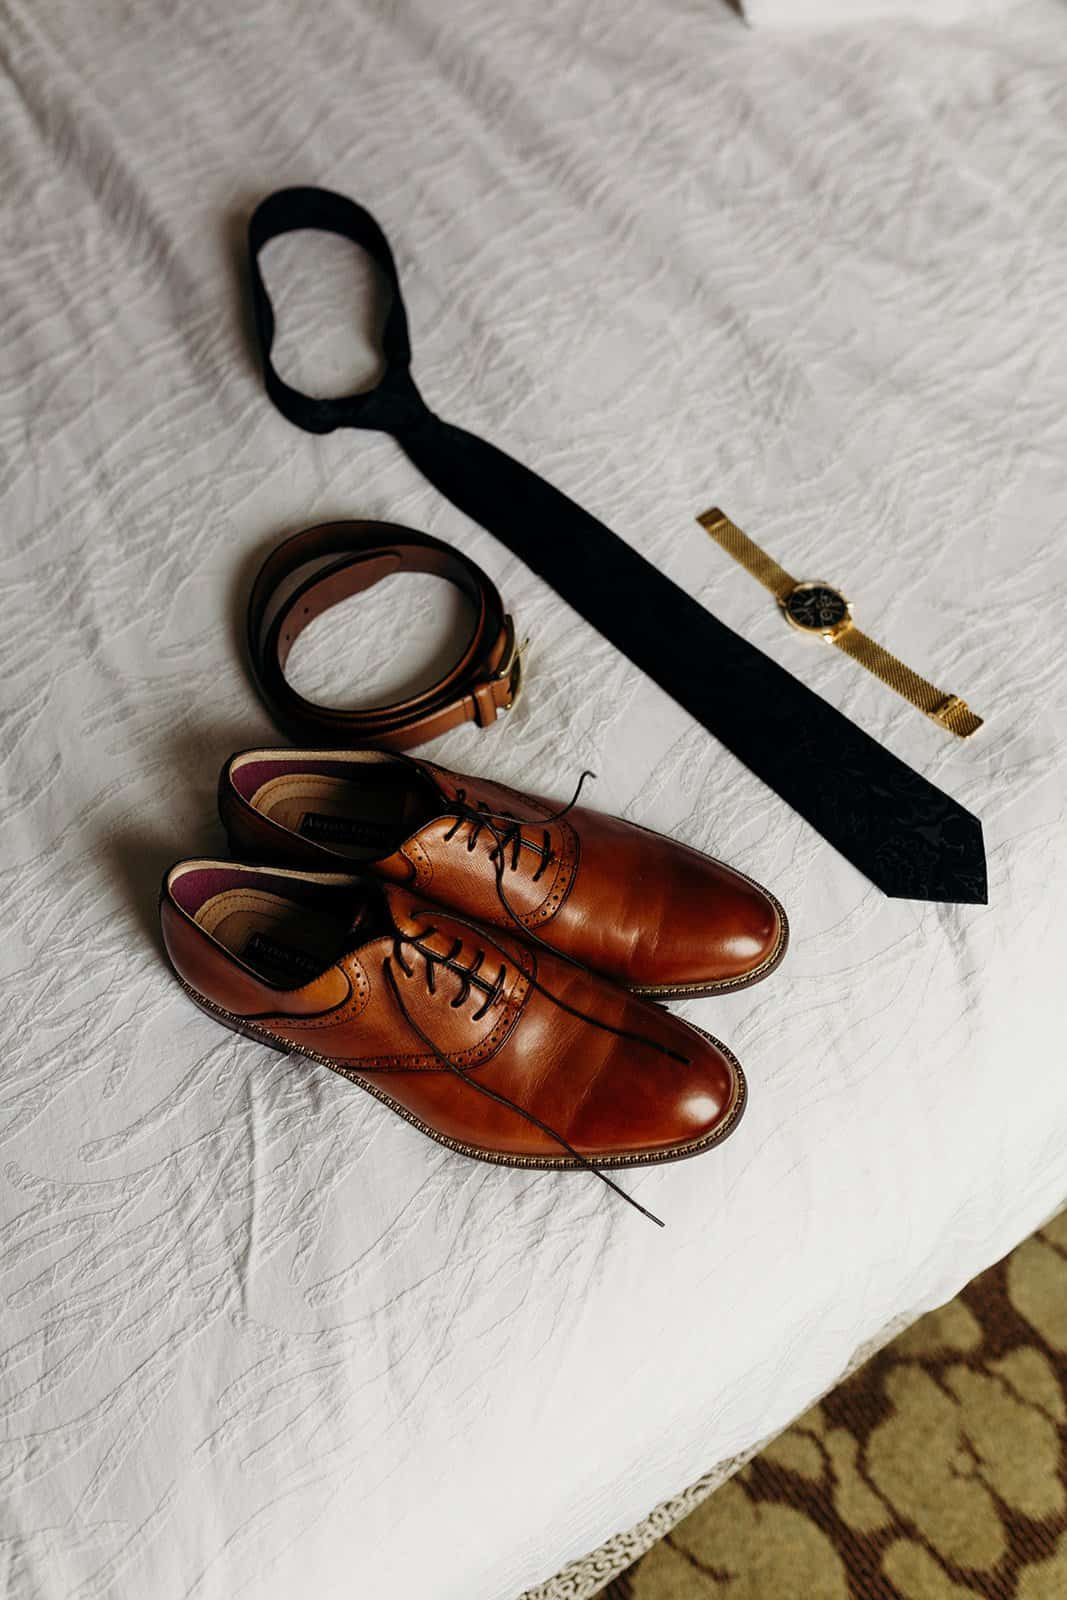 Shoes, tie, belt and watch on bed